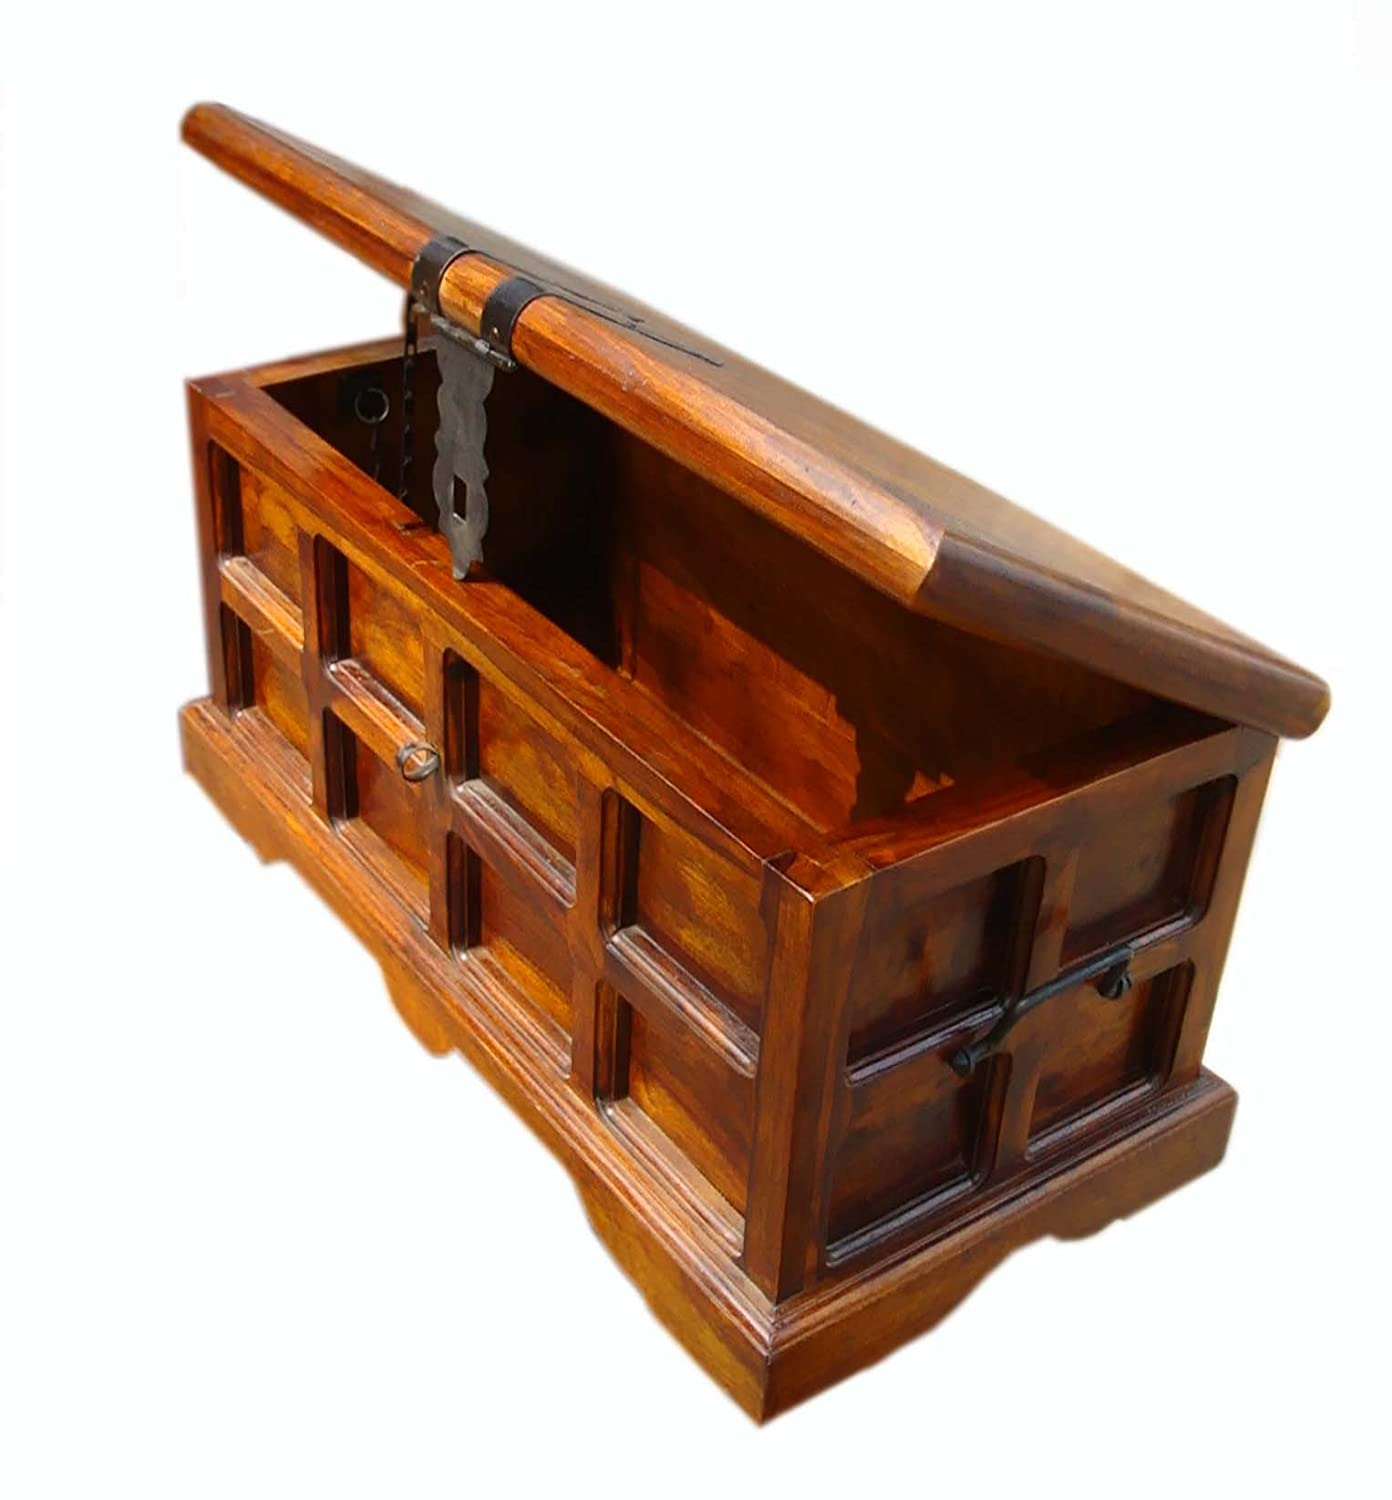 Solid Wood Sheesham Antique Look Coffee Table/Center Table Cum Storage Box/Trunk/Blanket Box, Size: (31x16x16) inch